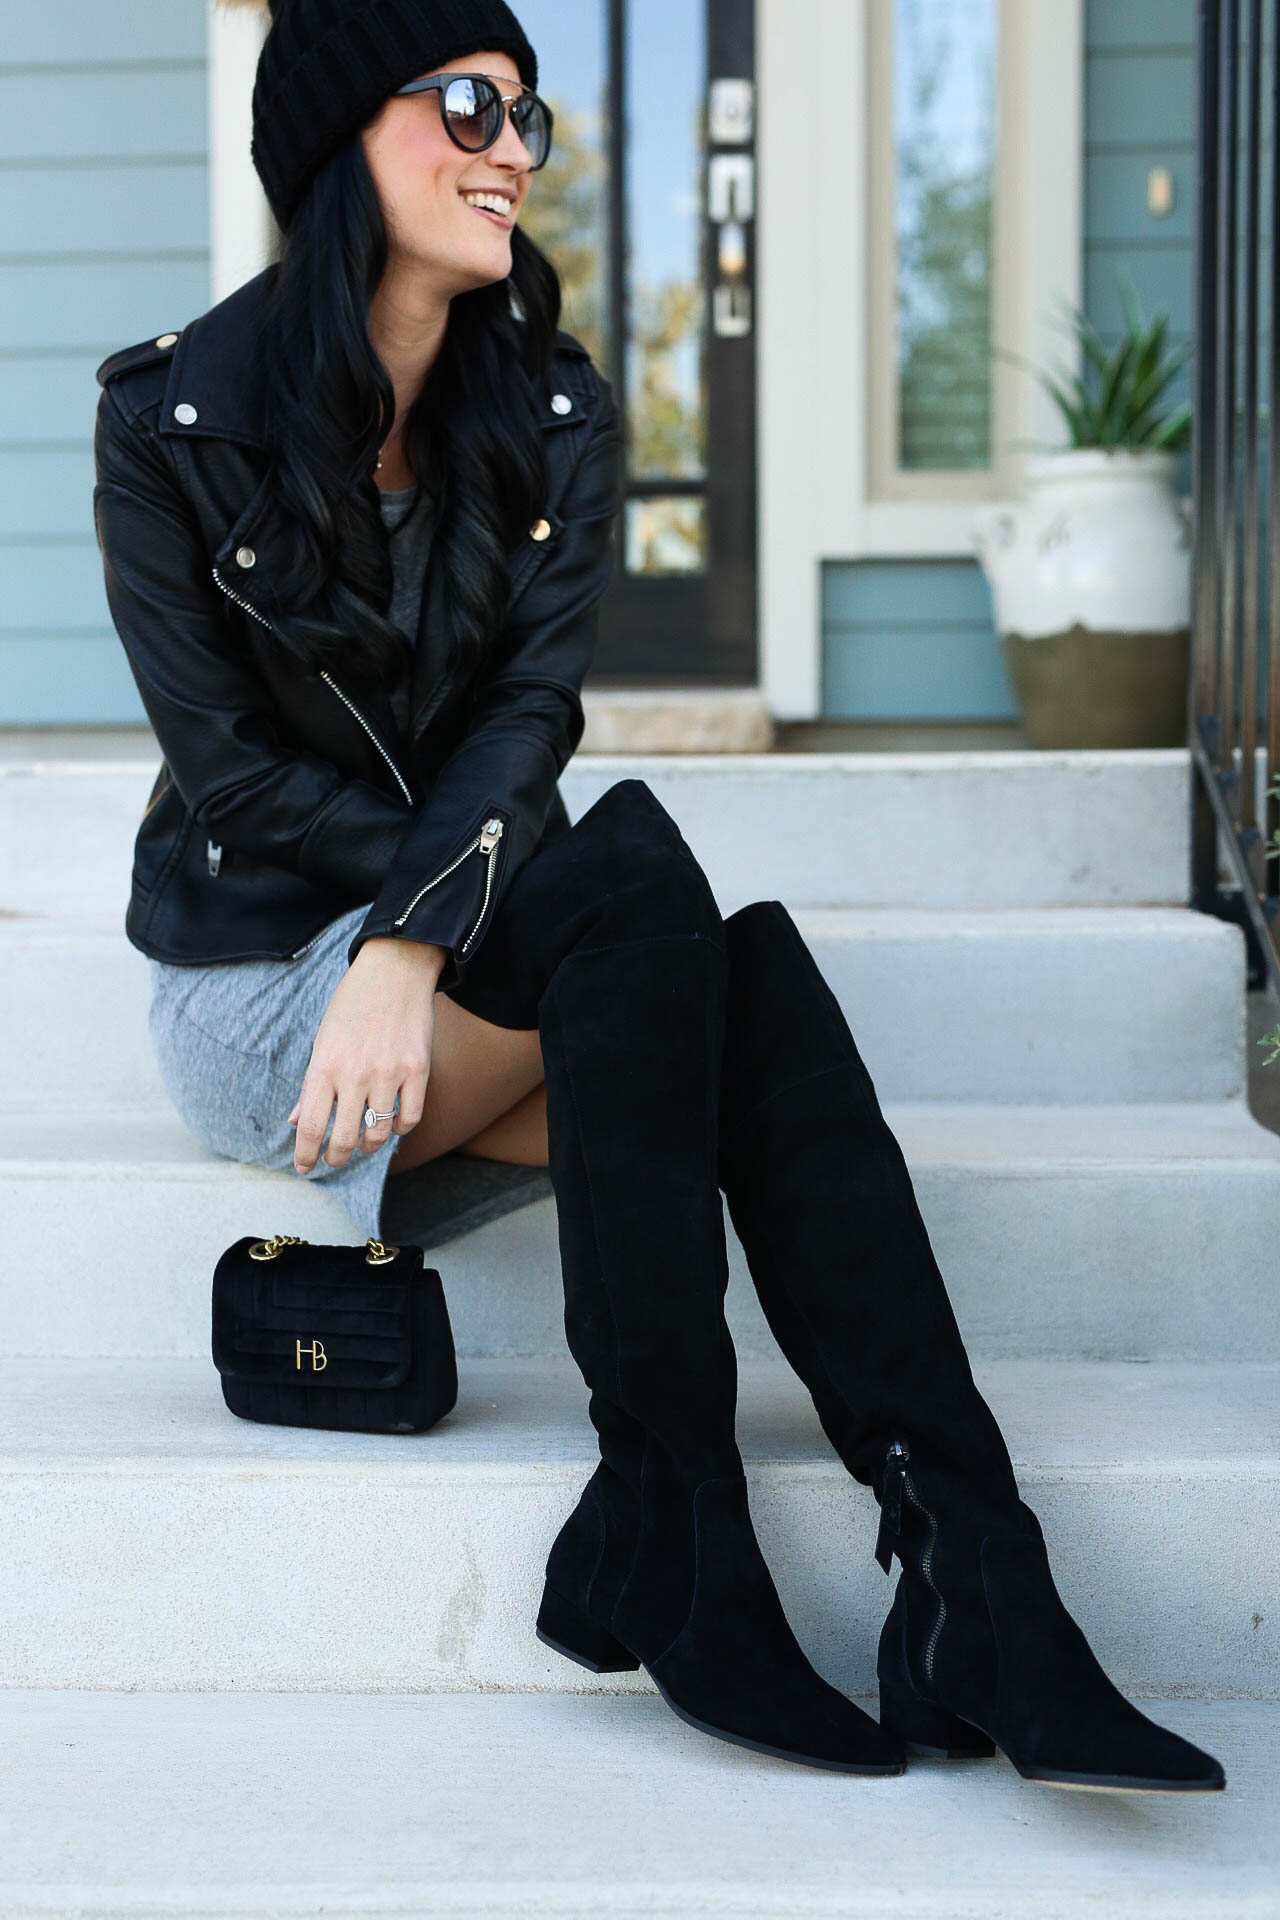 Ruched Long Sleeve Dress, Black Moto Jacket, Ruby Suede Over the Knee Boot, Henri Bendel Over the Shoulder Bag, Mirrored Sunglasses, Black Fur Pom Sweater Hat   fall style tips   what to wear for fall   cool weather fashion   fashion for fall   style tips for fall   outfit ideas for fall    Dressed to Kill #pompombeanie #leatherjacket #fallstyle